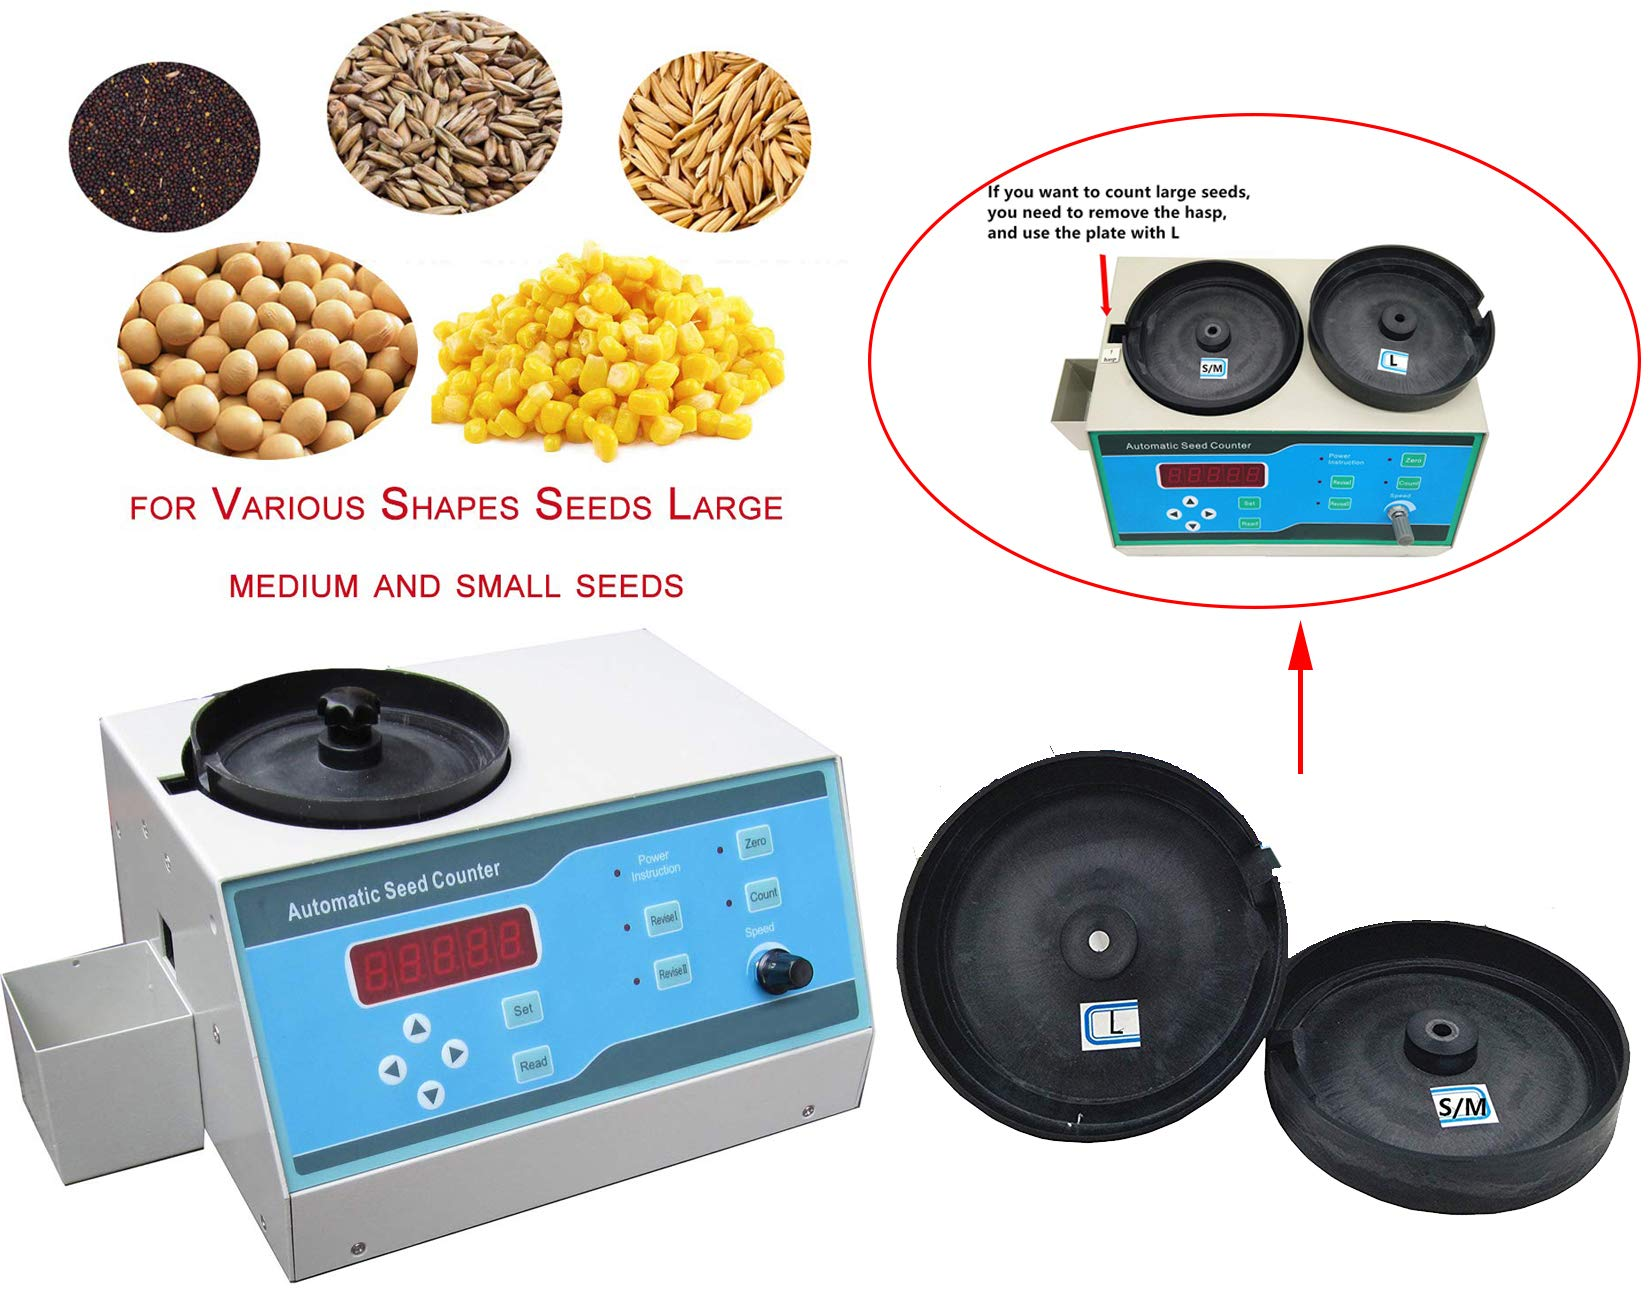 VTSYIQI Automatic Seeds Counter Machine Automatic Counting Instrument Sly-C with Adjustable Speed for Various Shapes Seeds Large Medium and Small Seeds LED Display